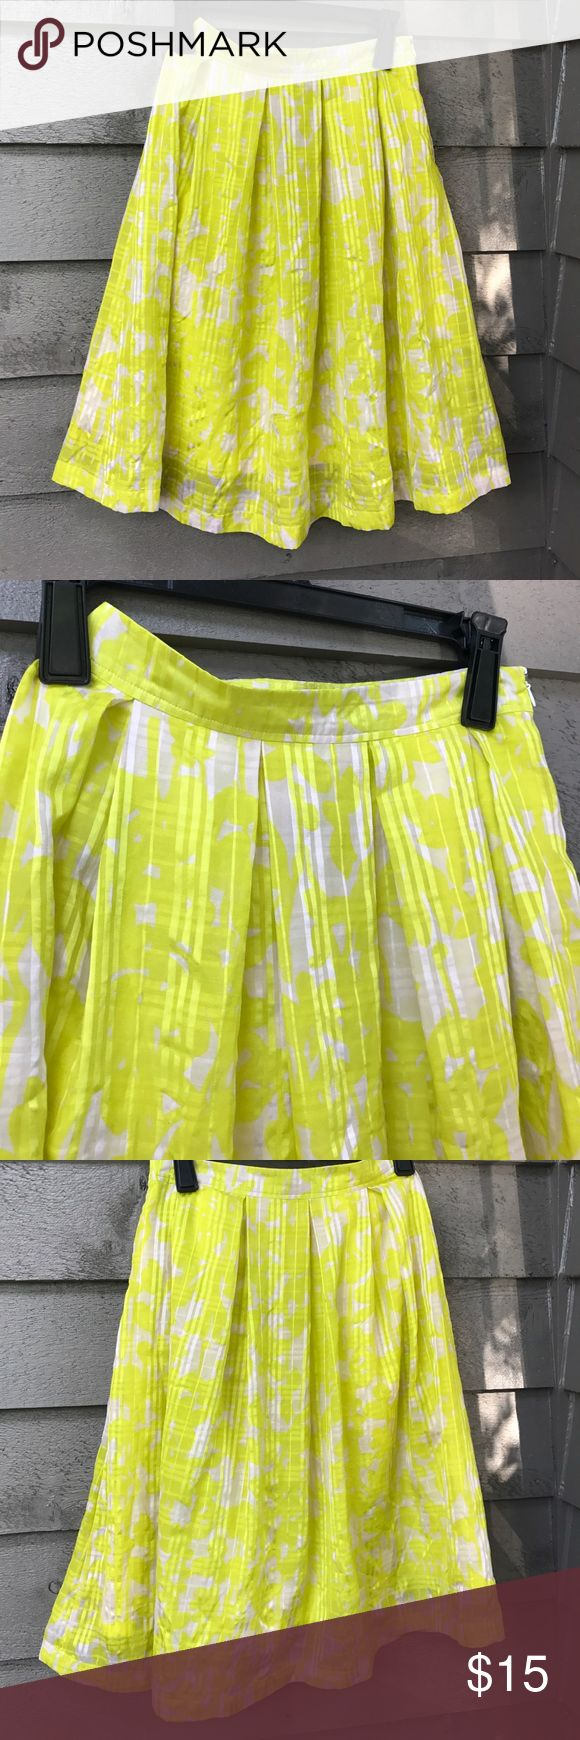 Oasis yellow & white shirt Yellow and white oasis skirt the skirt has two small not noticeable spots ( see pictures) this skirt is discounted based on that oasis  Skirts